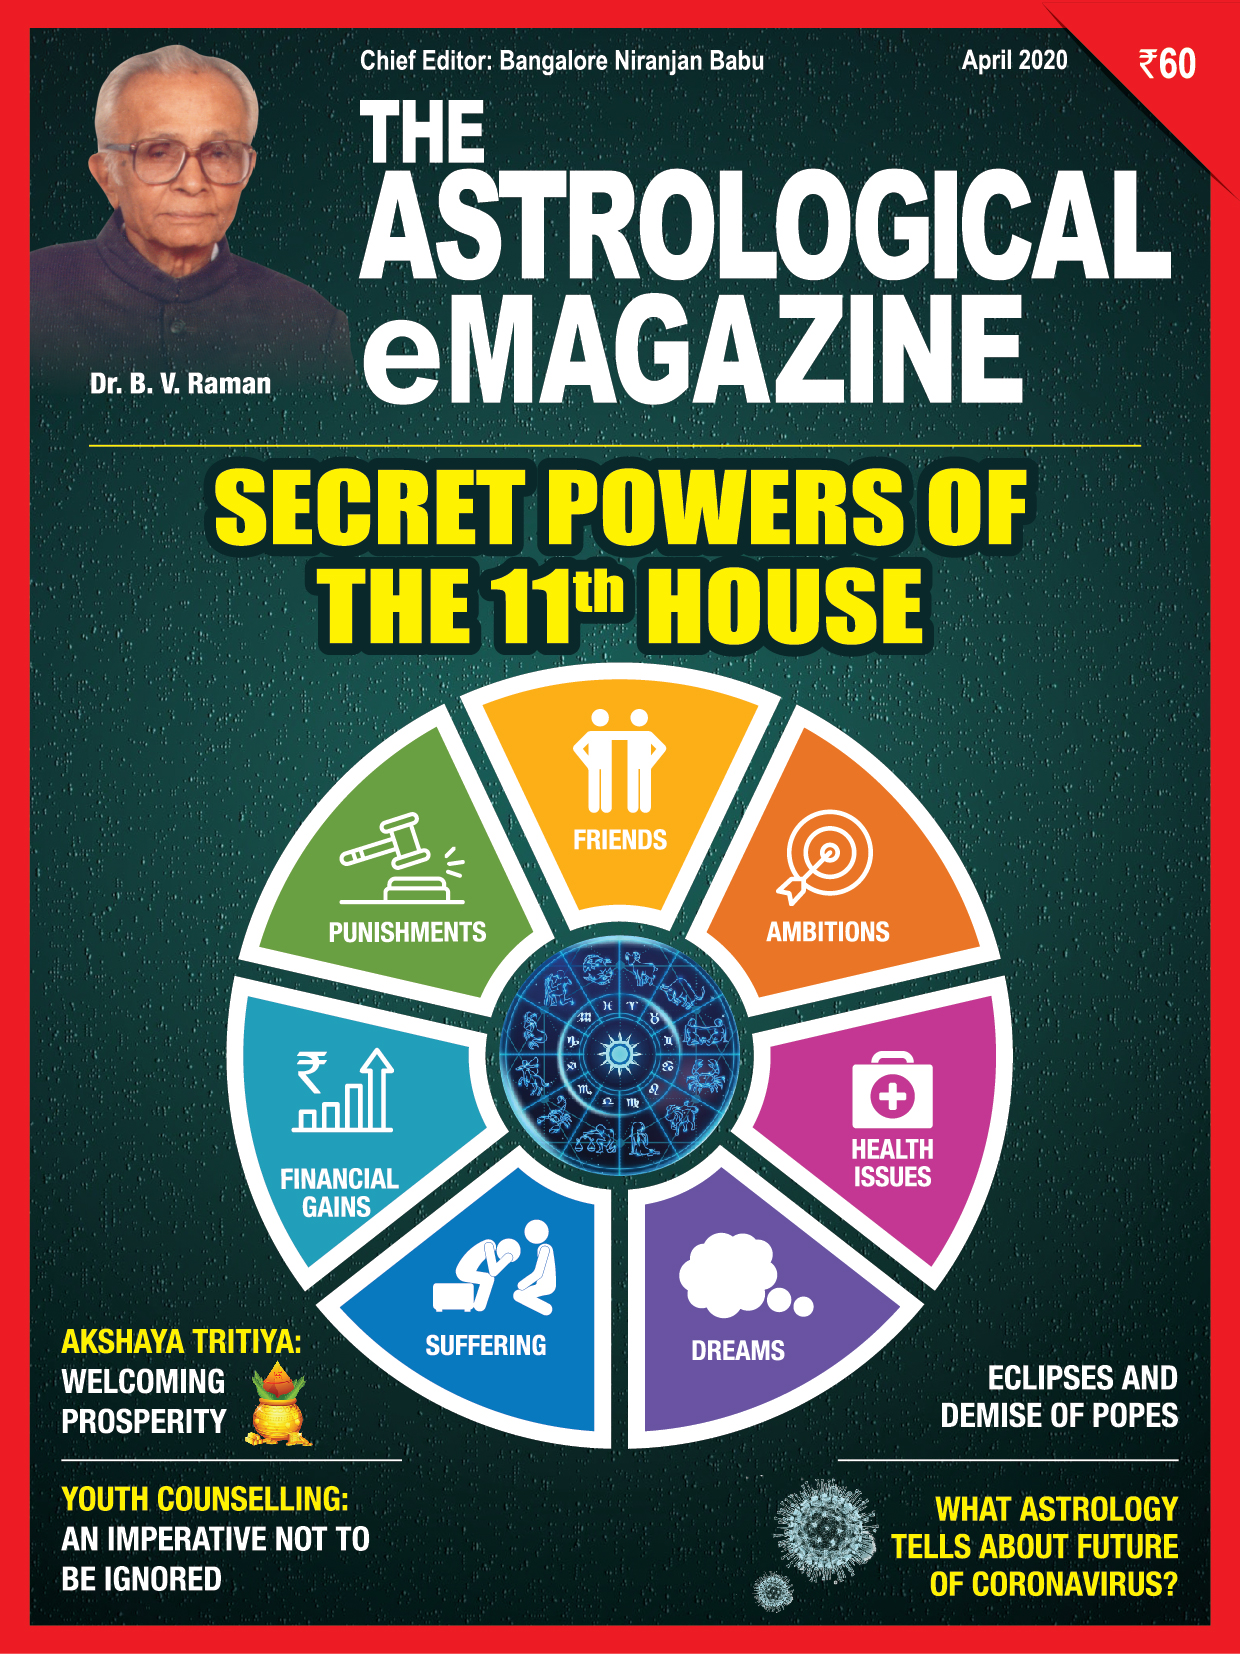 April 2020 issue astrology magazine